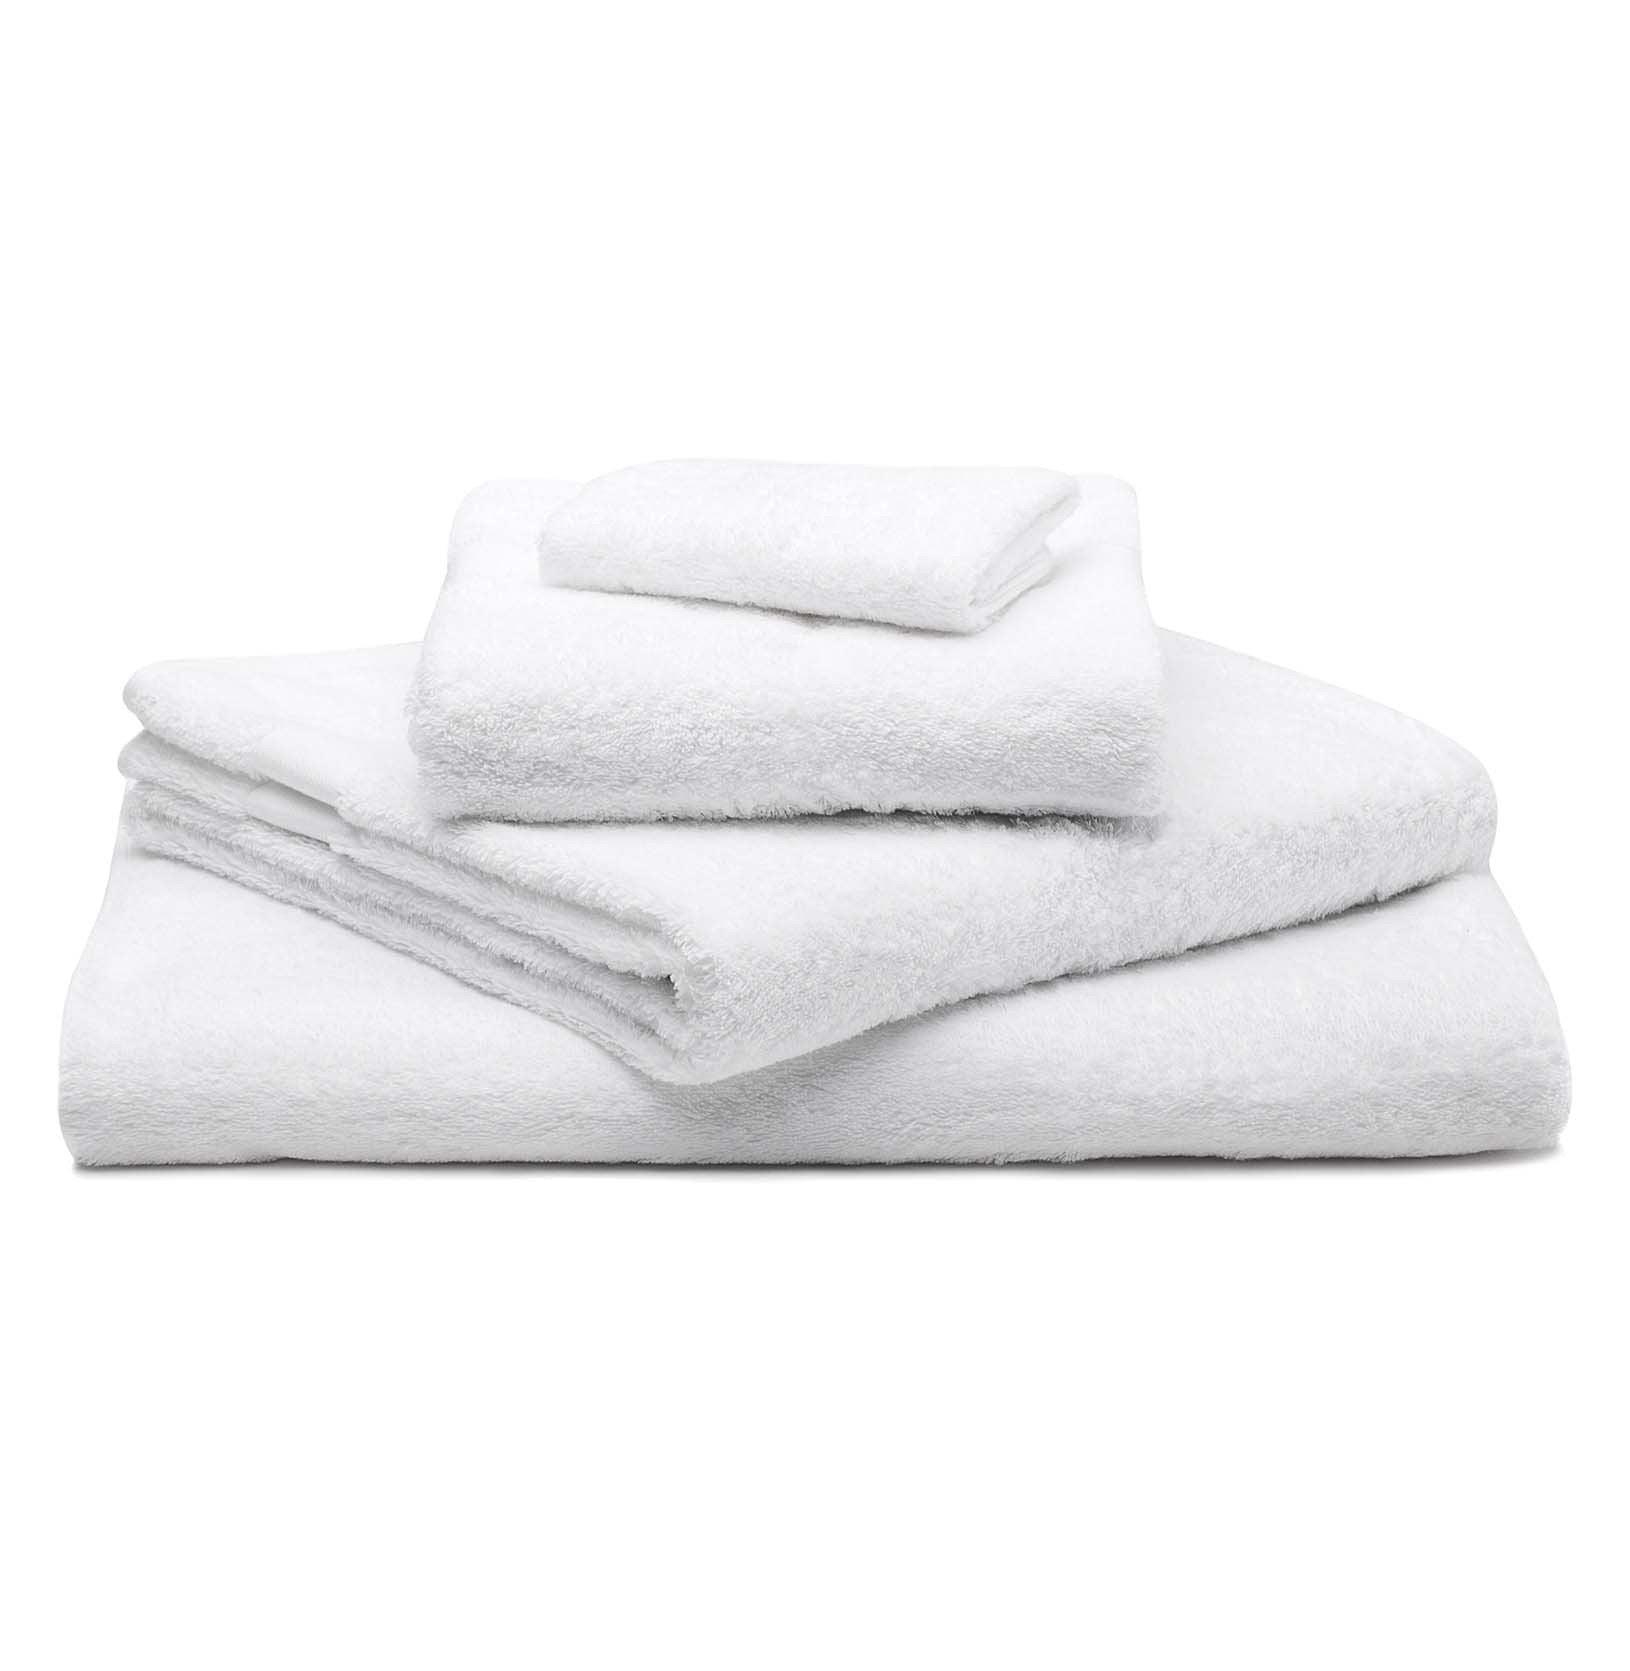 Penela hand towel, white, 100% egyptian cotton